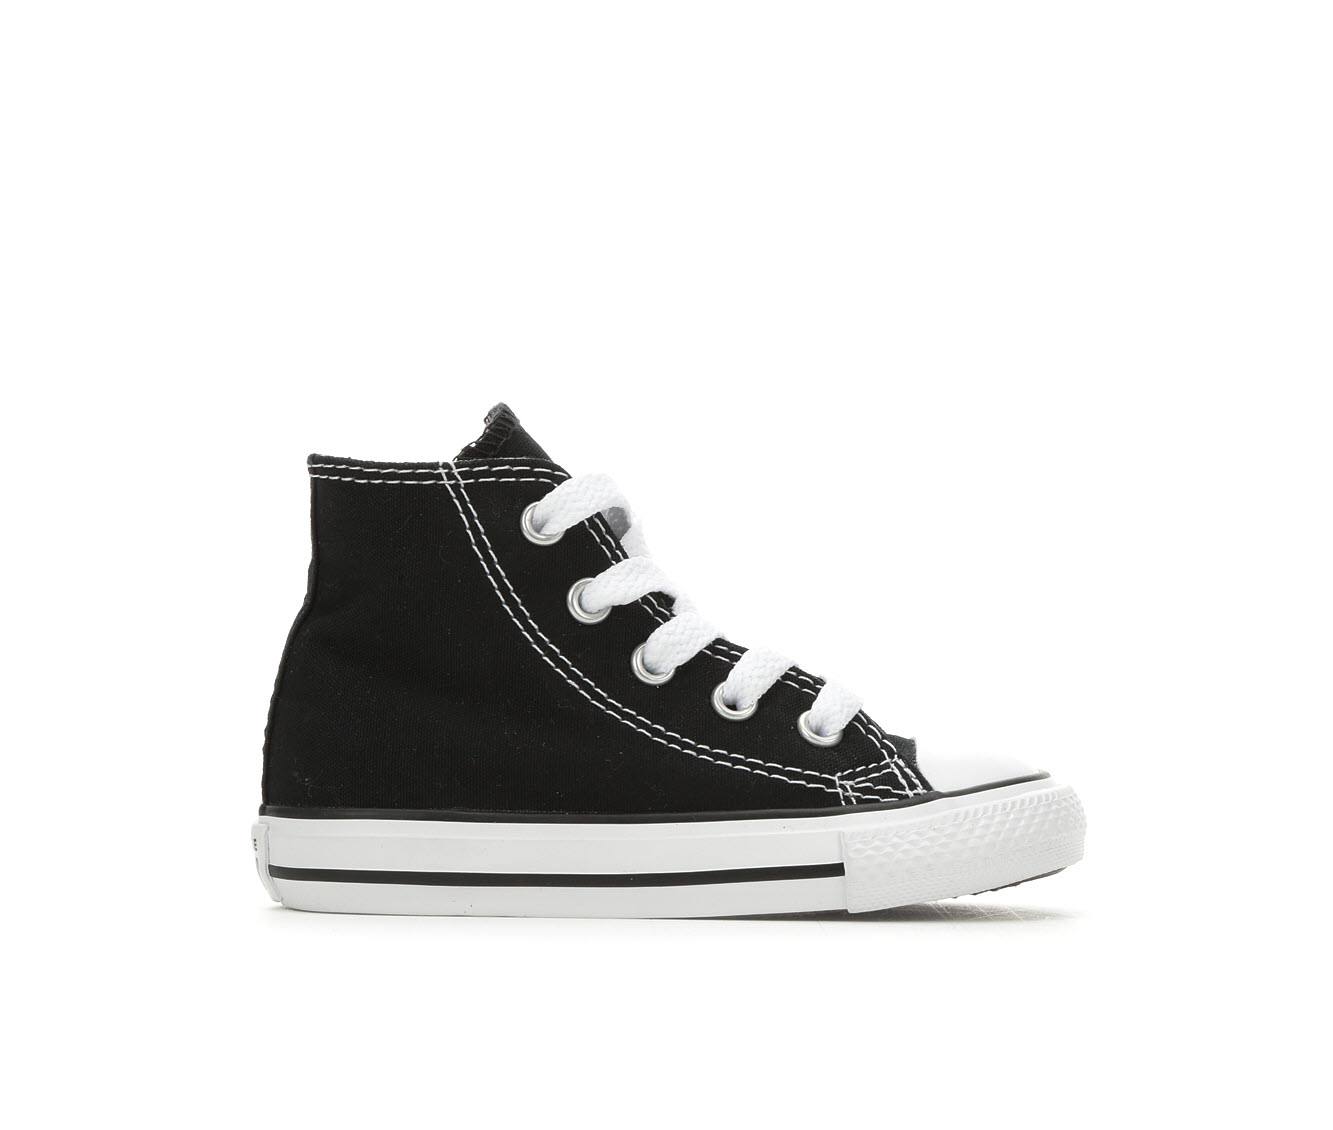 Boys' Converse Infant Chuck Taylor All Star Canvas Hi Sneakers (Black)